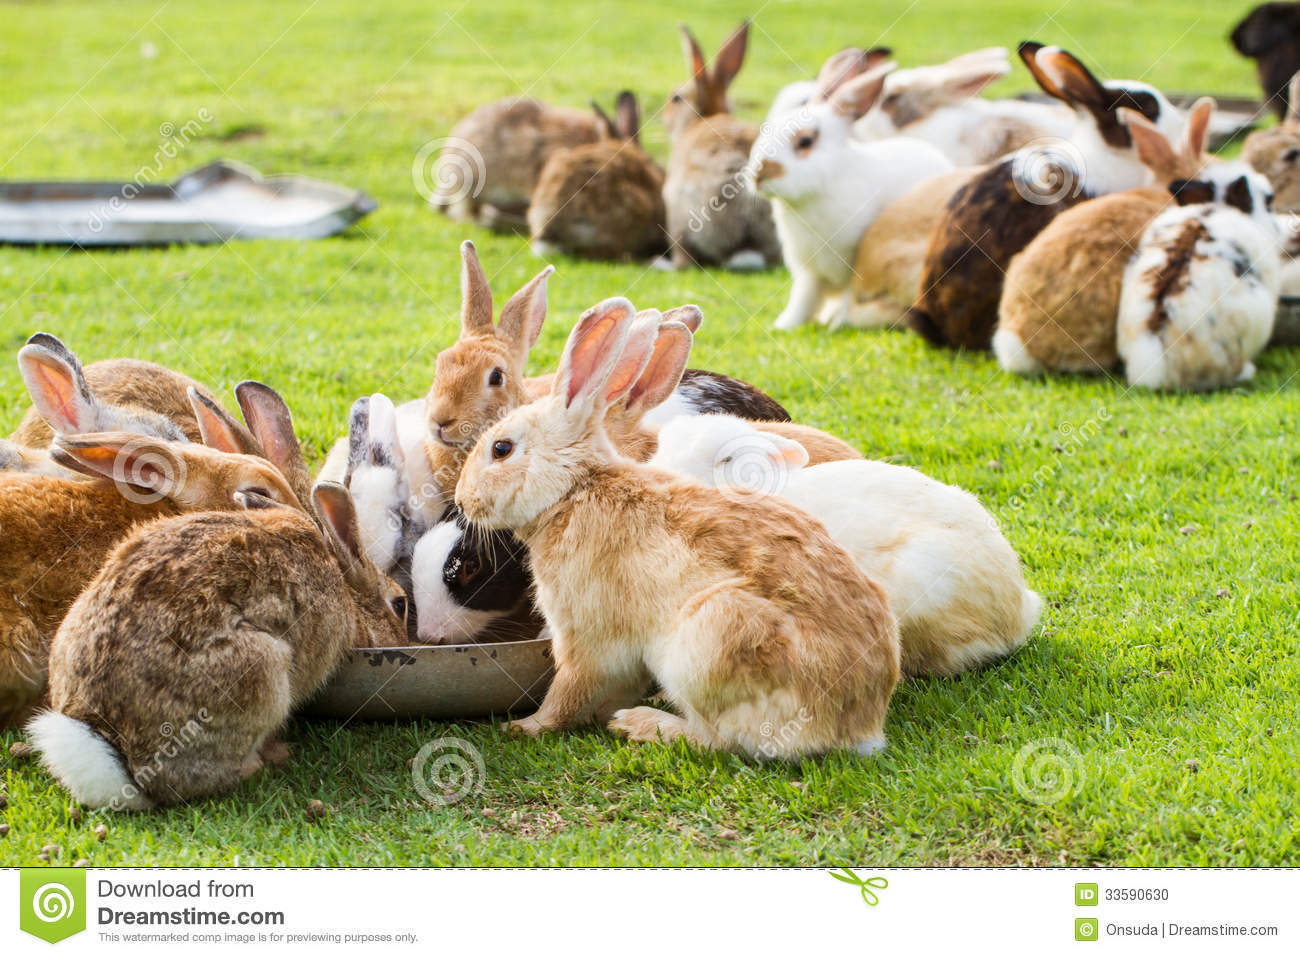 Gardening Group: Group Of Rabbits Stock Photo